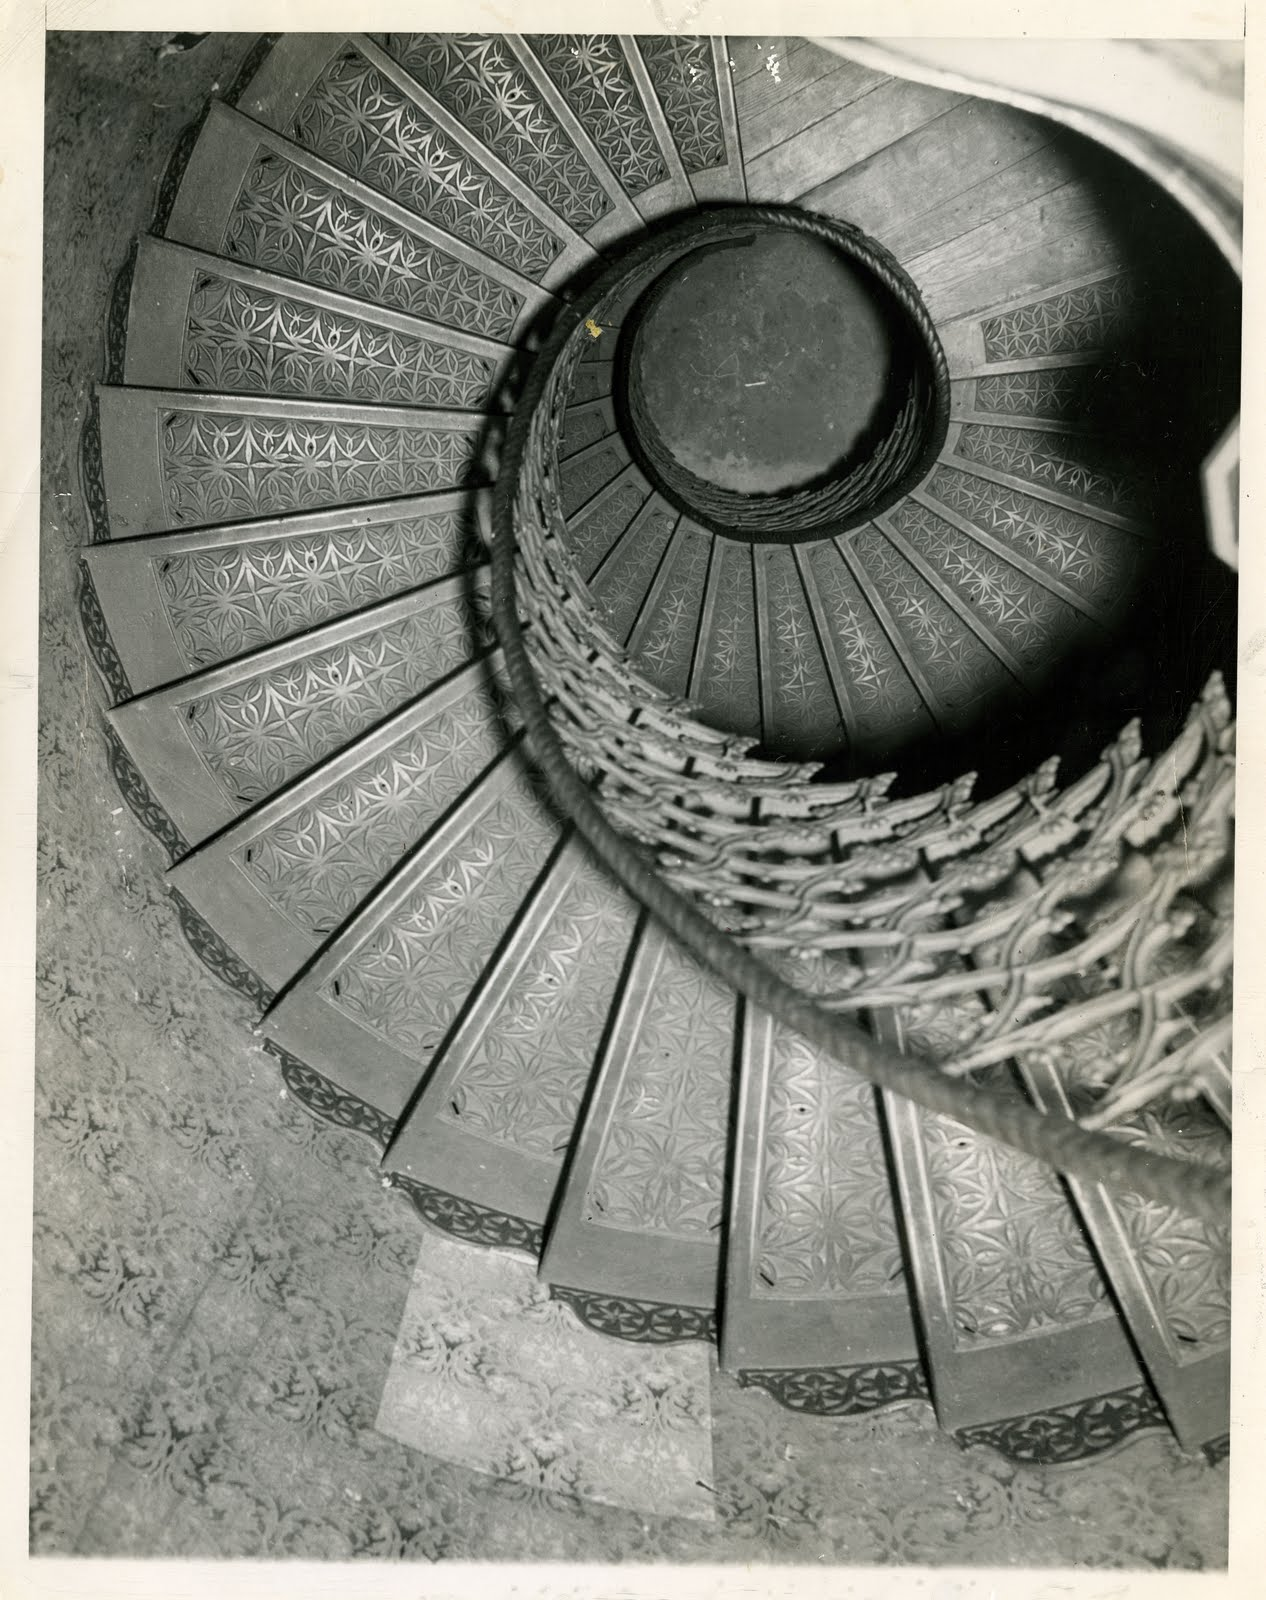 This Image Is A Recent Acquisition From EBay   It Shows The Staircase In  Prattu0027s Castle, Built By William Abbot Pratt In 1853 And Demolished In 1956.